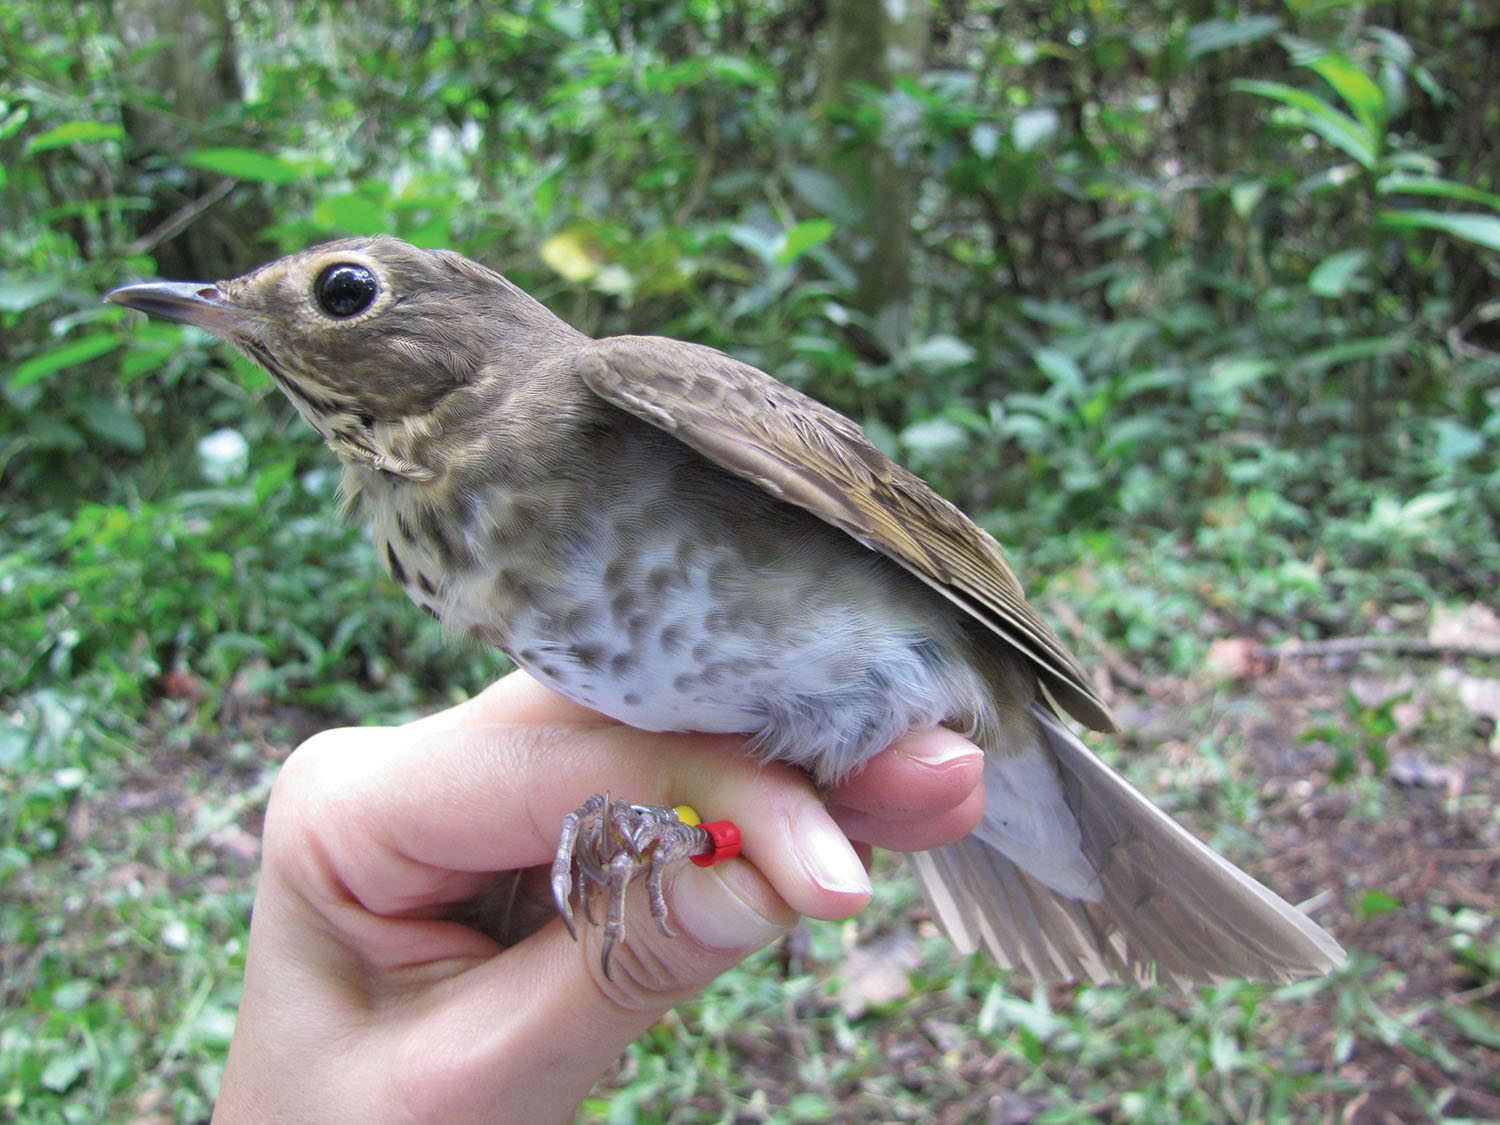 IMPACTS: Research using Motus stations uncovered new information about the migratory habits of Swainson's Thrush and its journeys from South America to Canada. Photo by Ana M. González